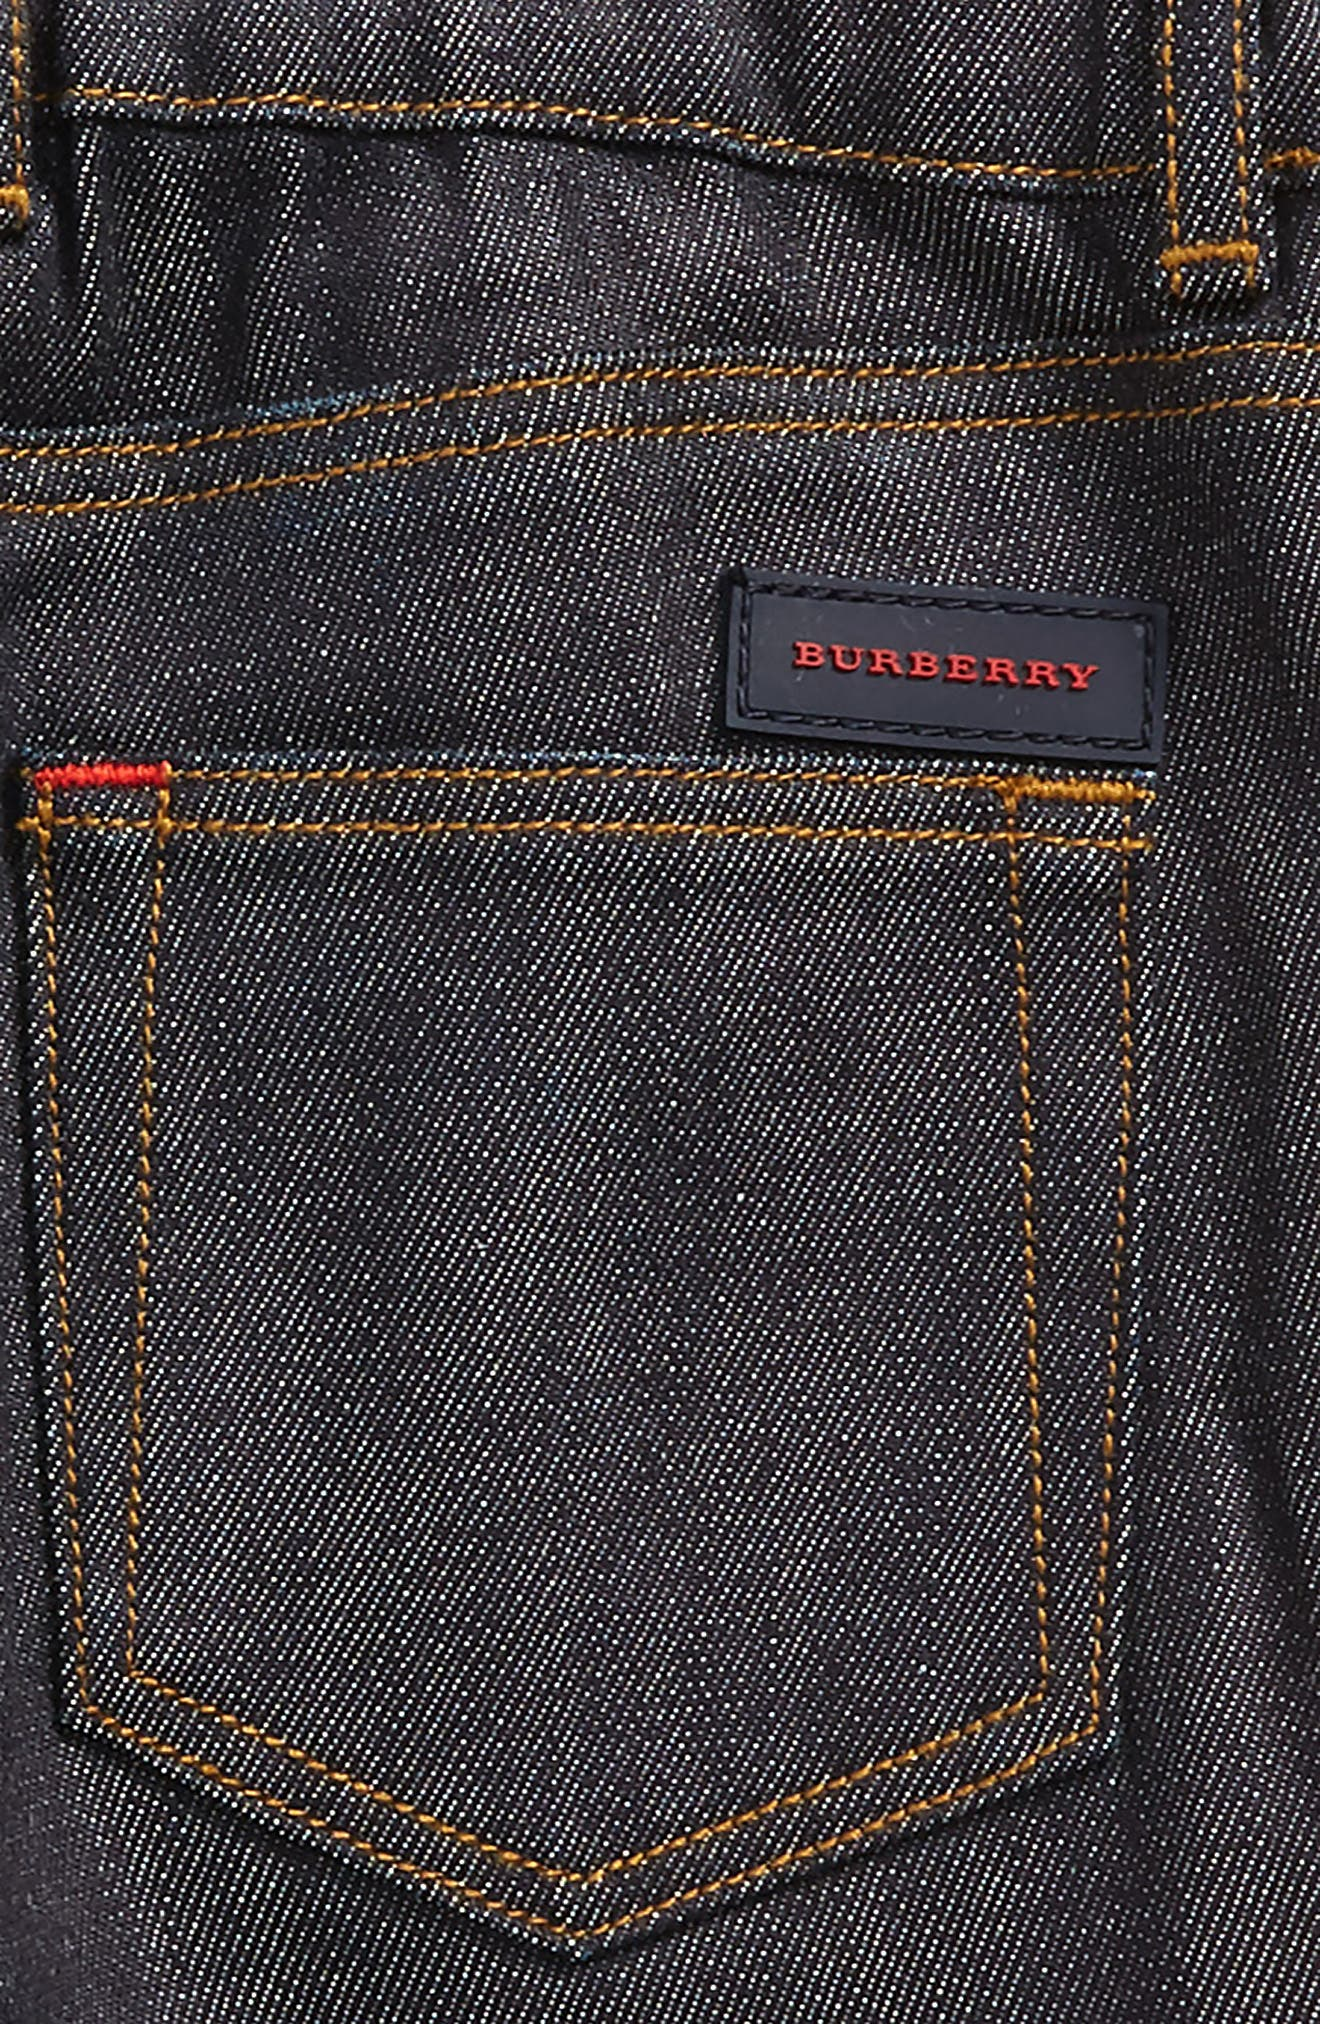 Alternate Image 3  - Burberry Check Cuff Relaxed Jeans (Toddler Boys)